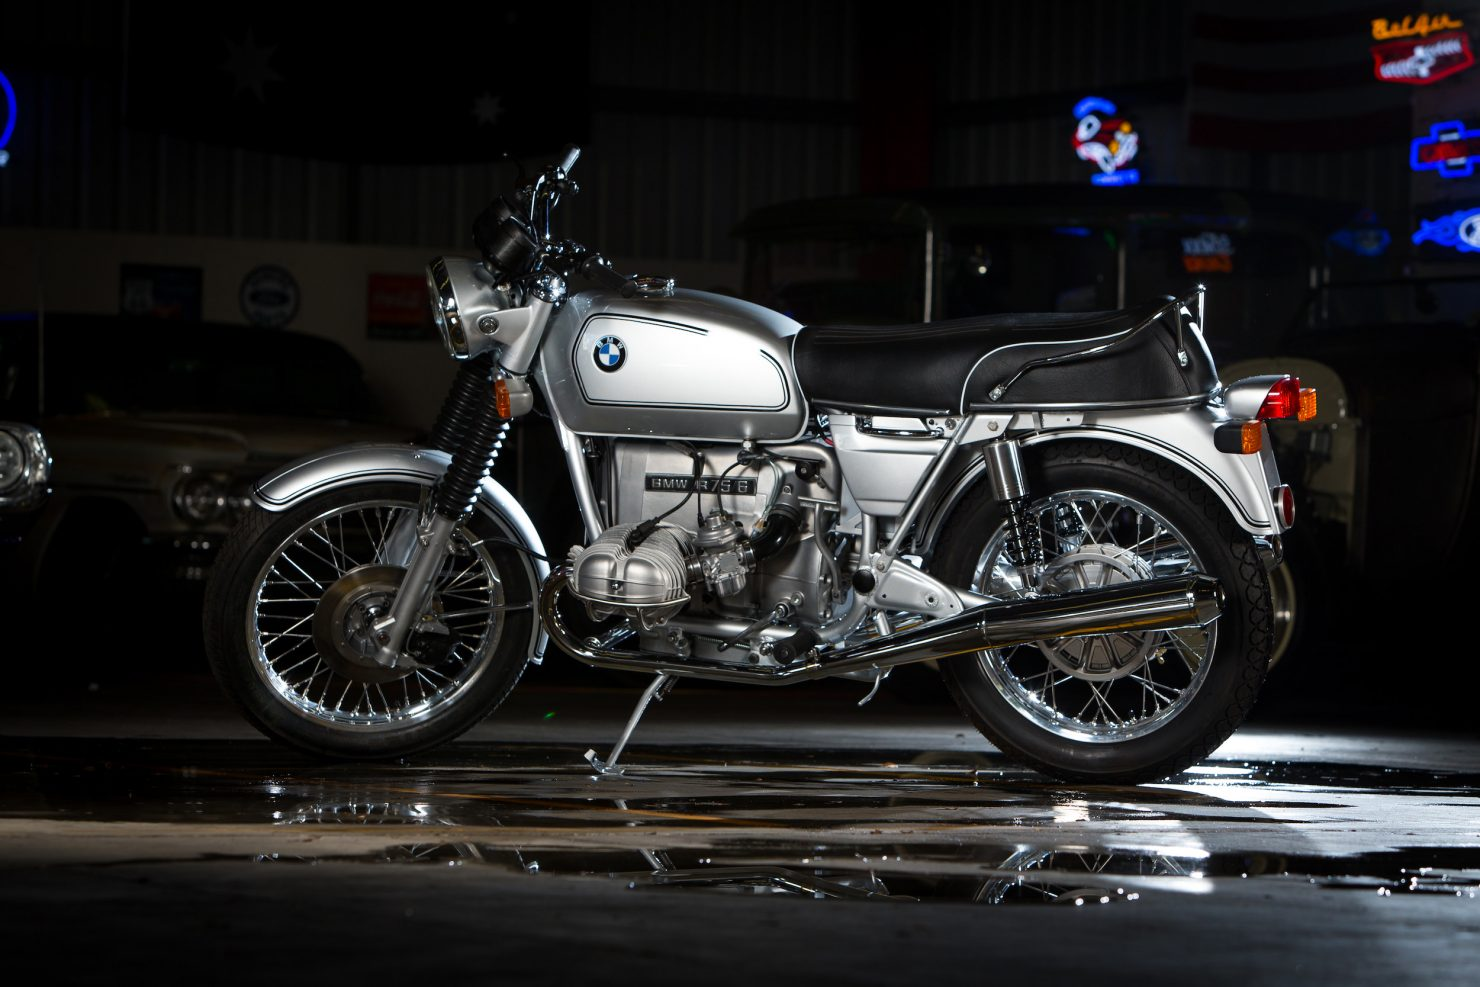 AM6P0562 1480x987 - Immaculately Restored: BMW R75/6